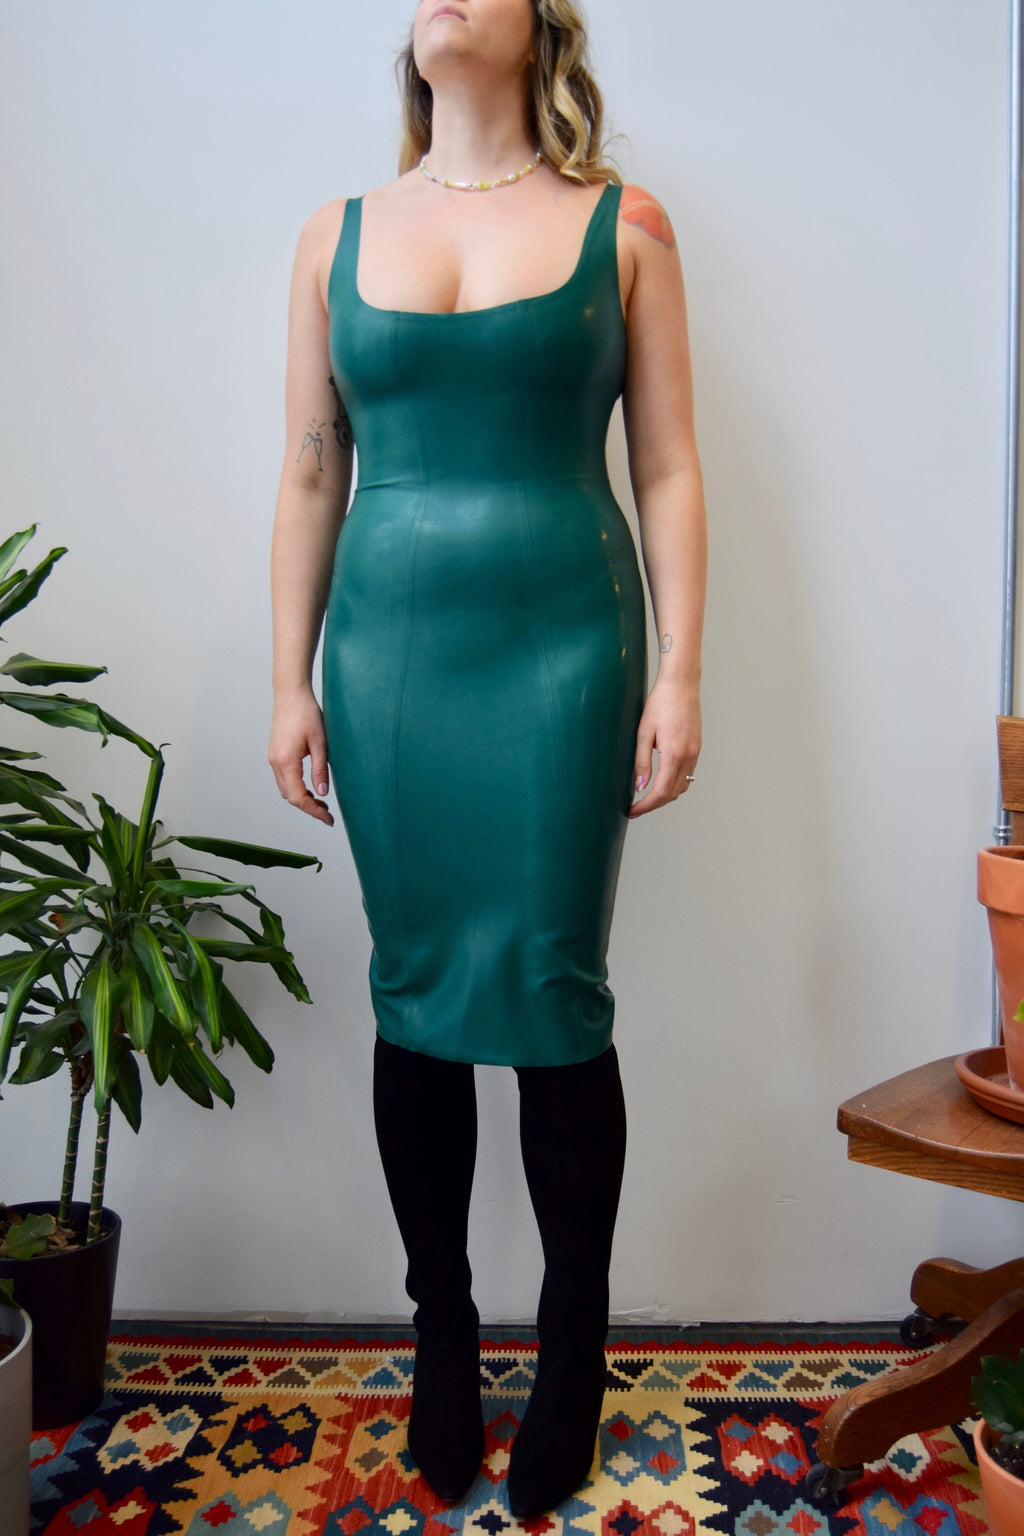 Kelly Green Latex Dress